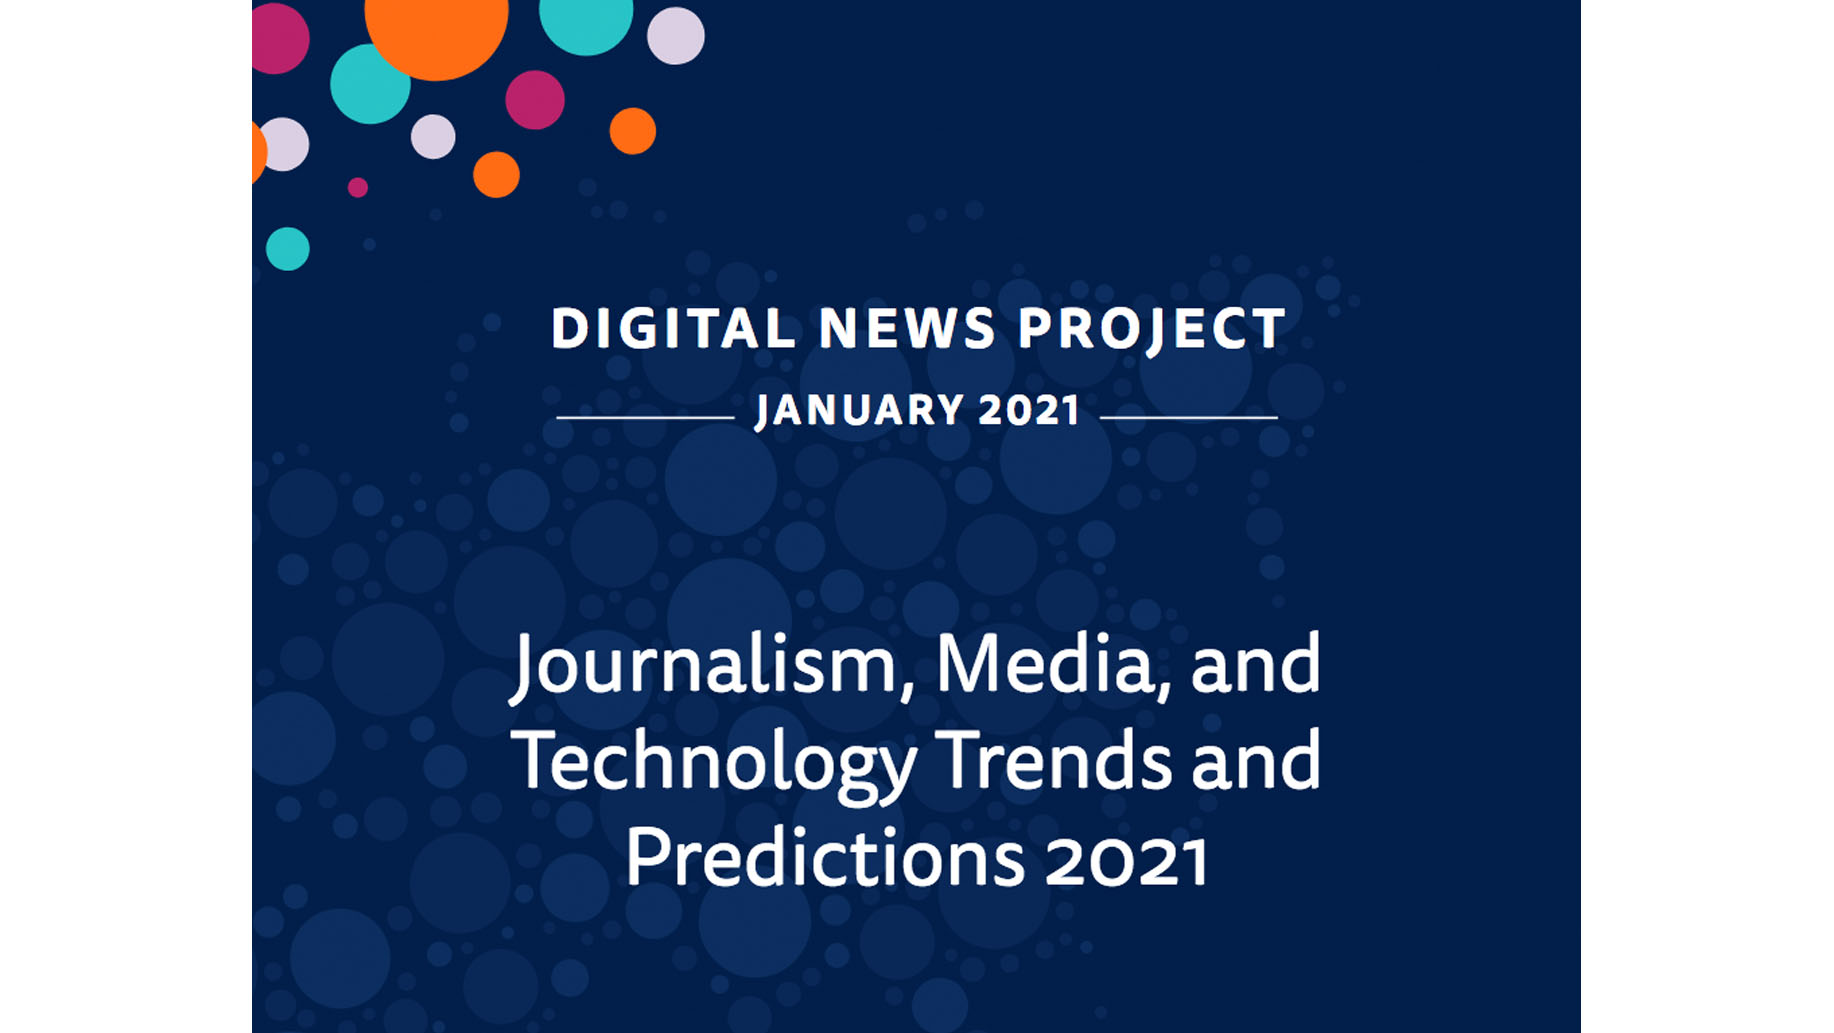 reuters-digital-news-2021-2